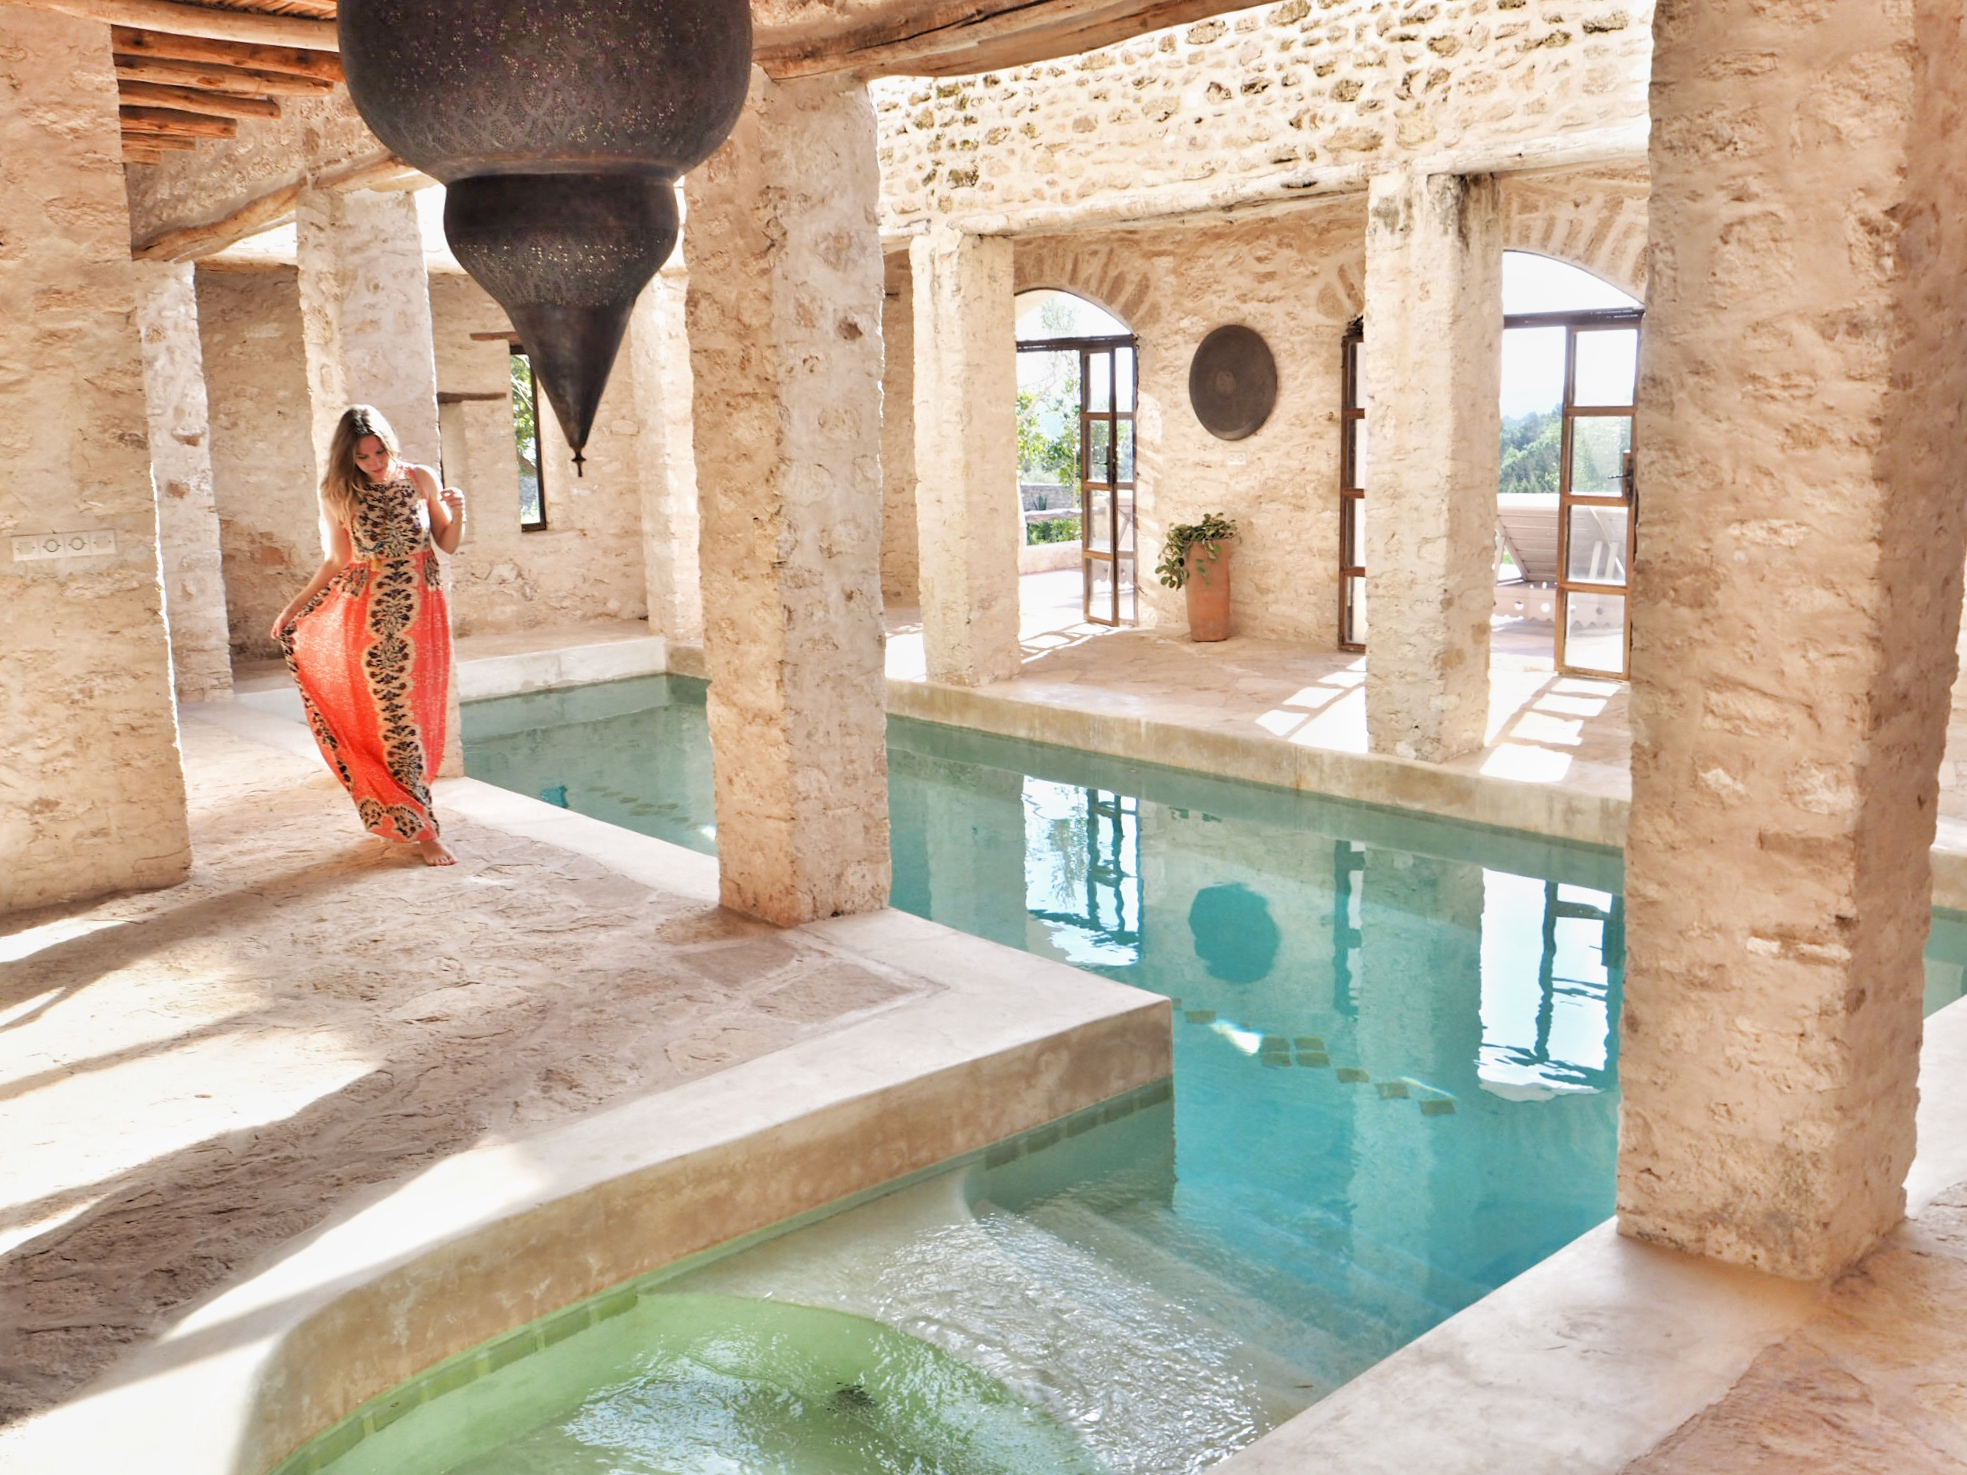 Villa Anouk, Essaouira - A Girl Who Travels